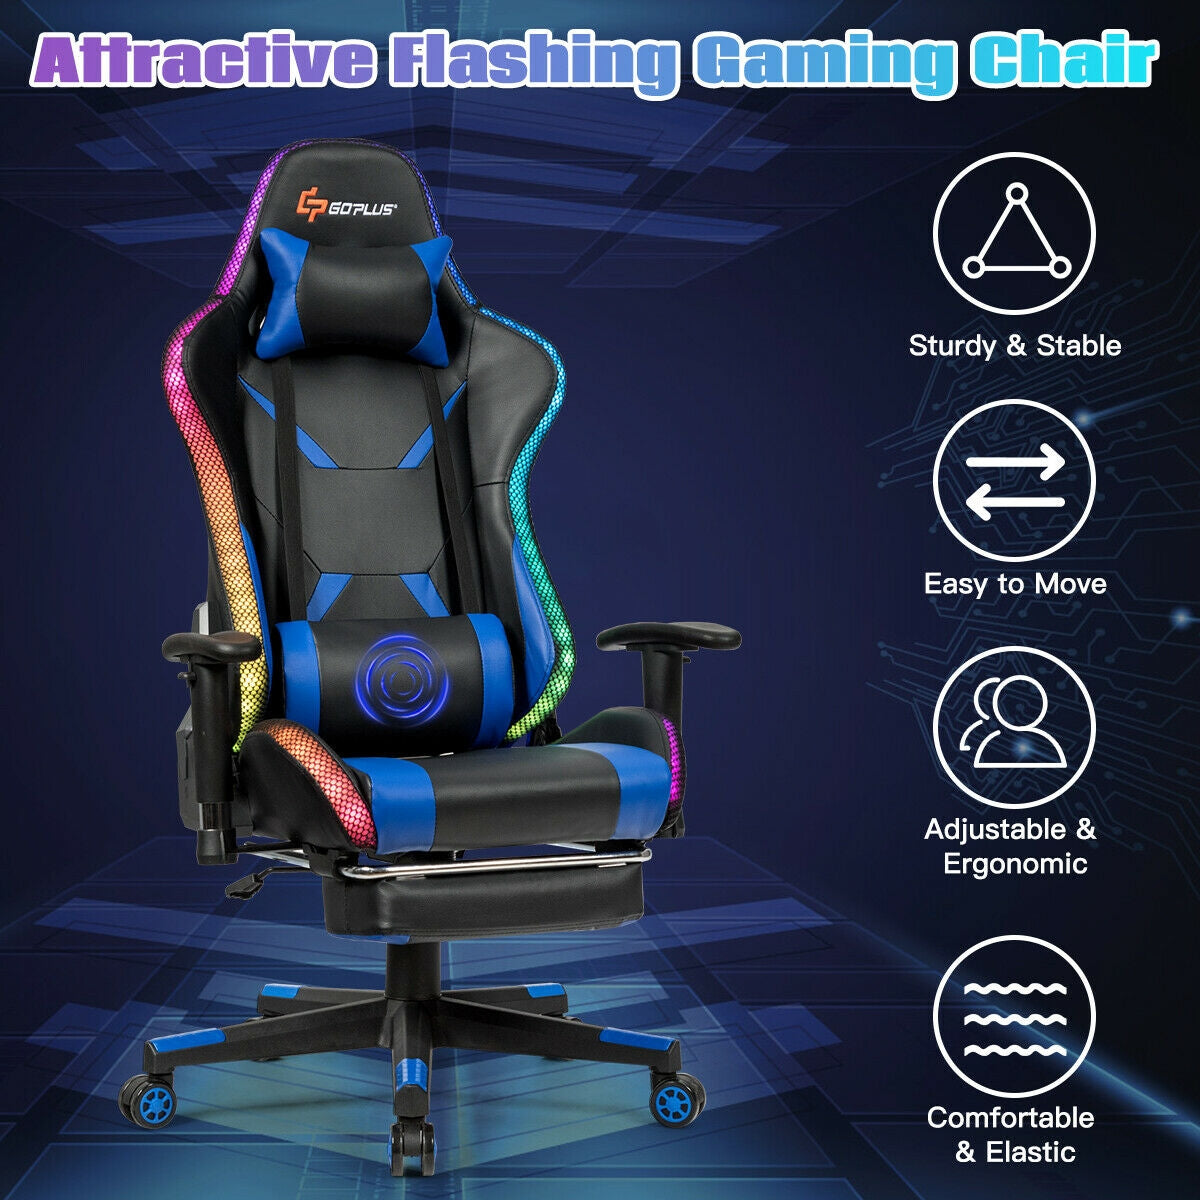 Massage Racing Gaming Chair  Chair with RGB LED Lights-Blue